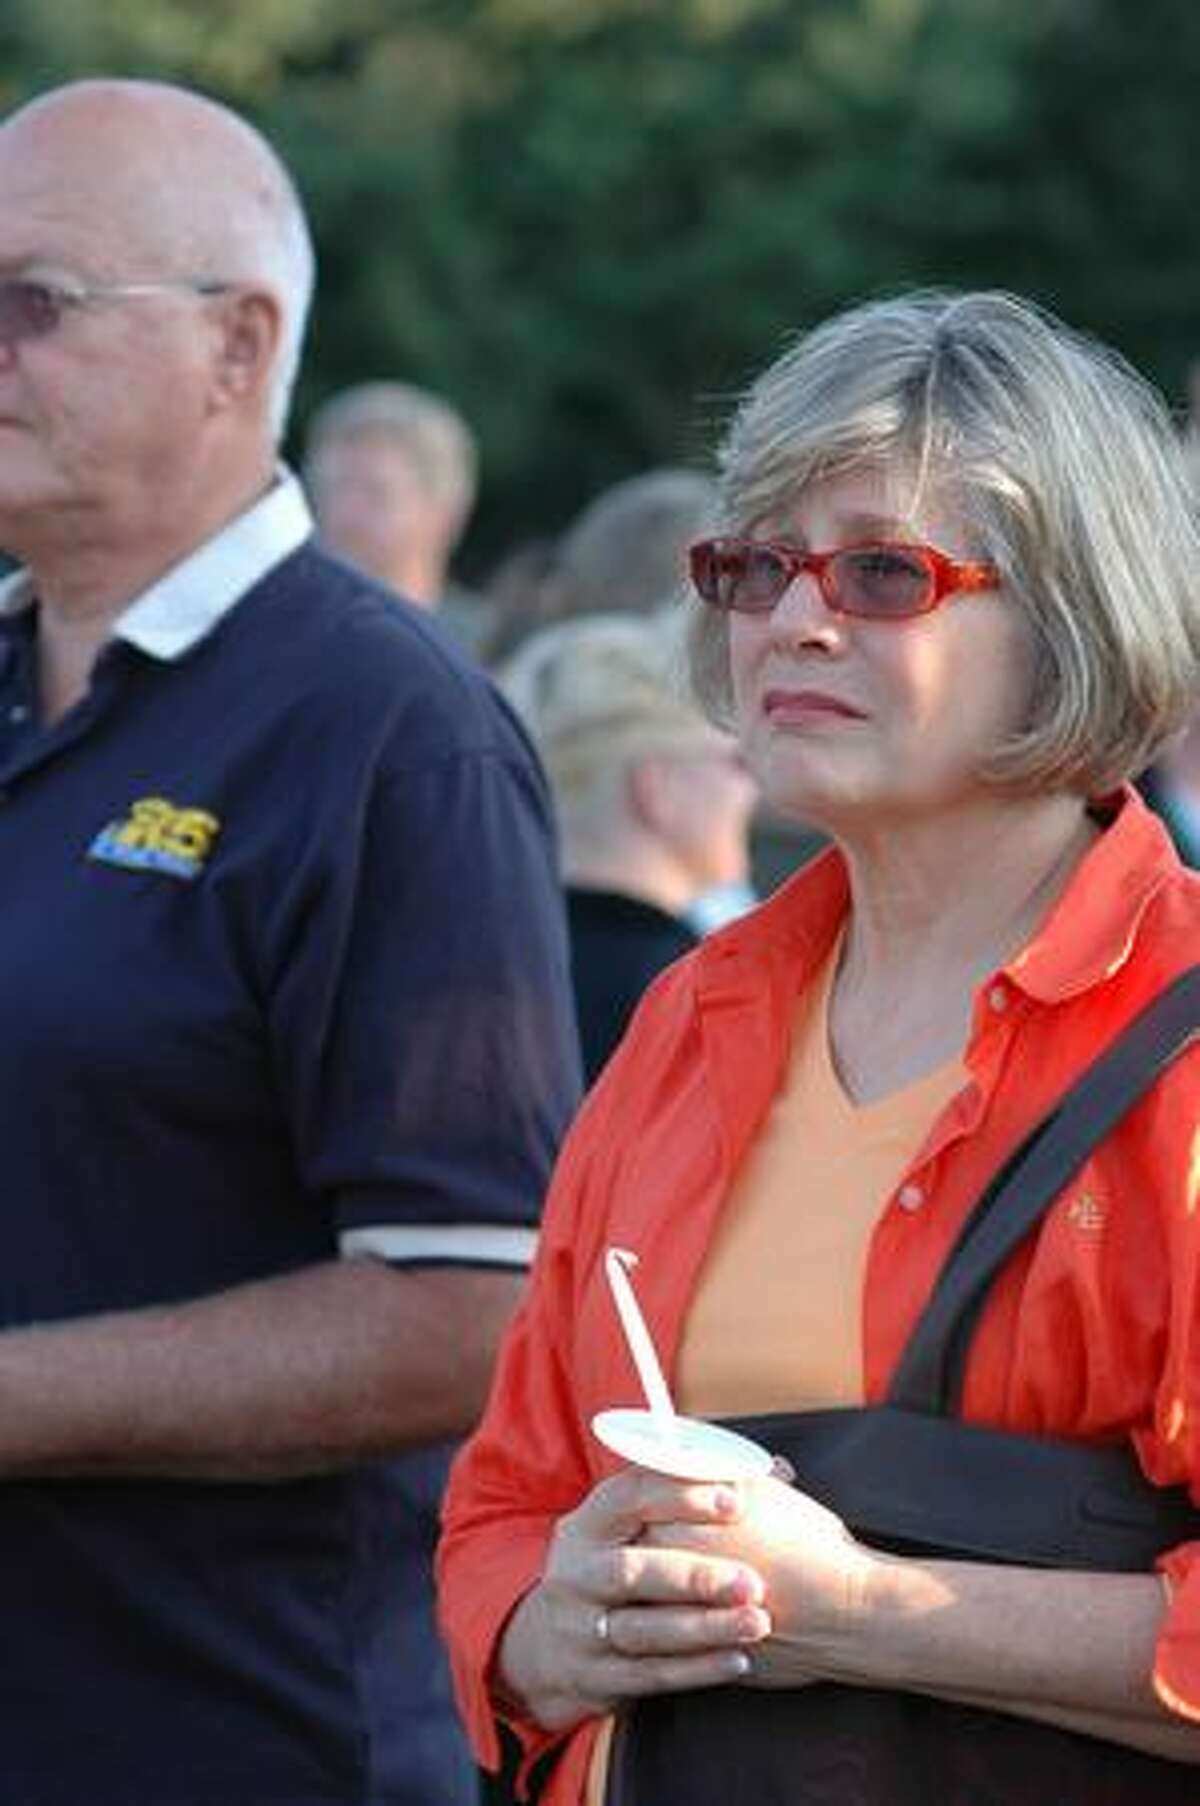 Elizabeth Graham, right, and Bob Cronn watch the start of a candle light vigil for the victim of a stabbing early last week at the South Park Community Center in south Seattle Thursday July 23, 2009. Said Graham,